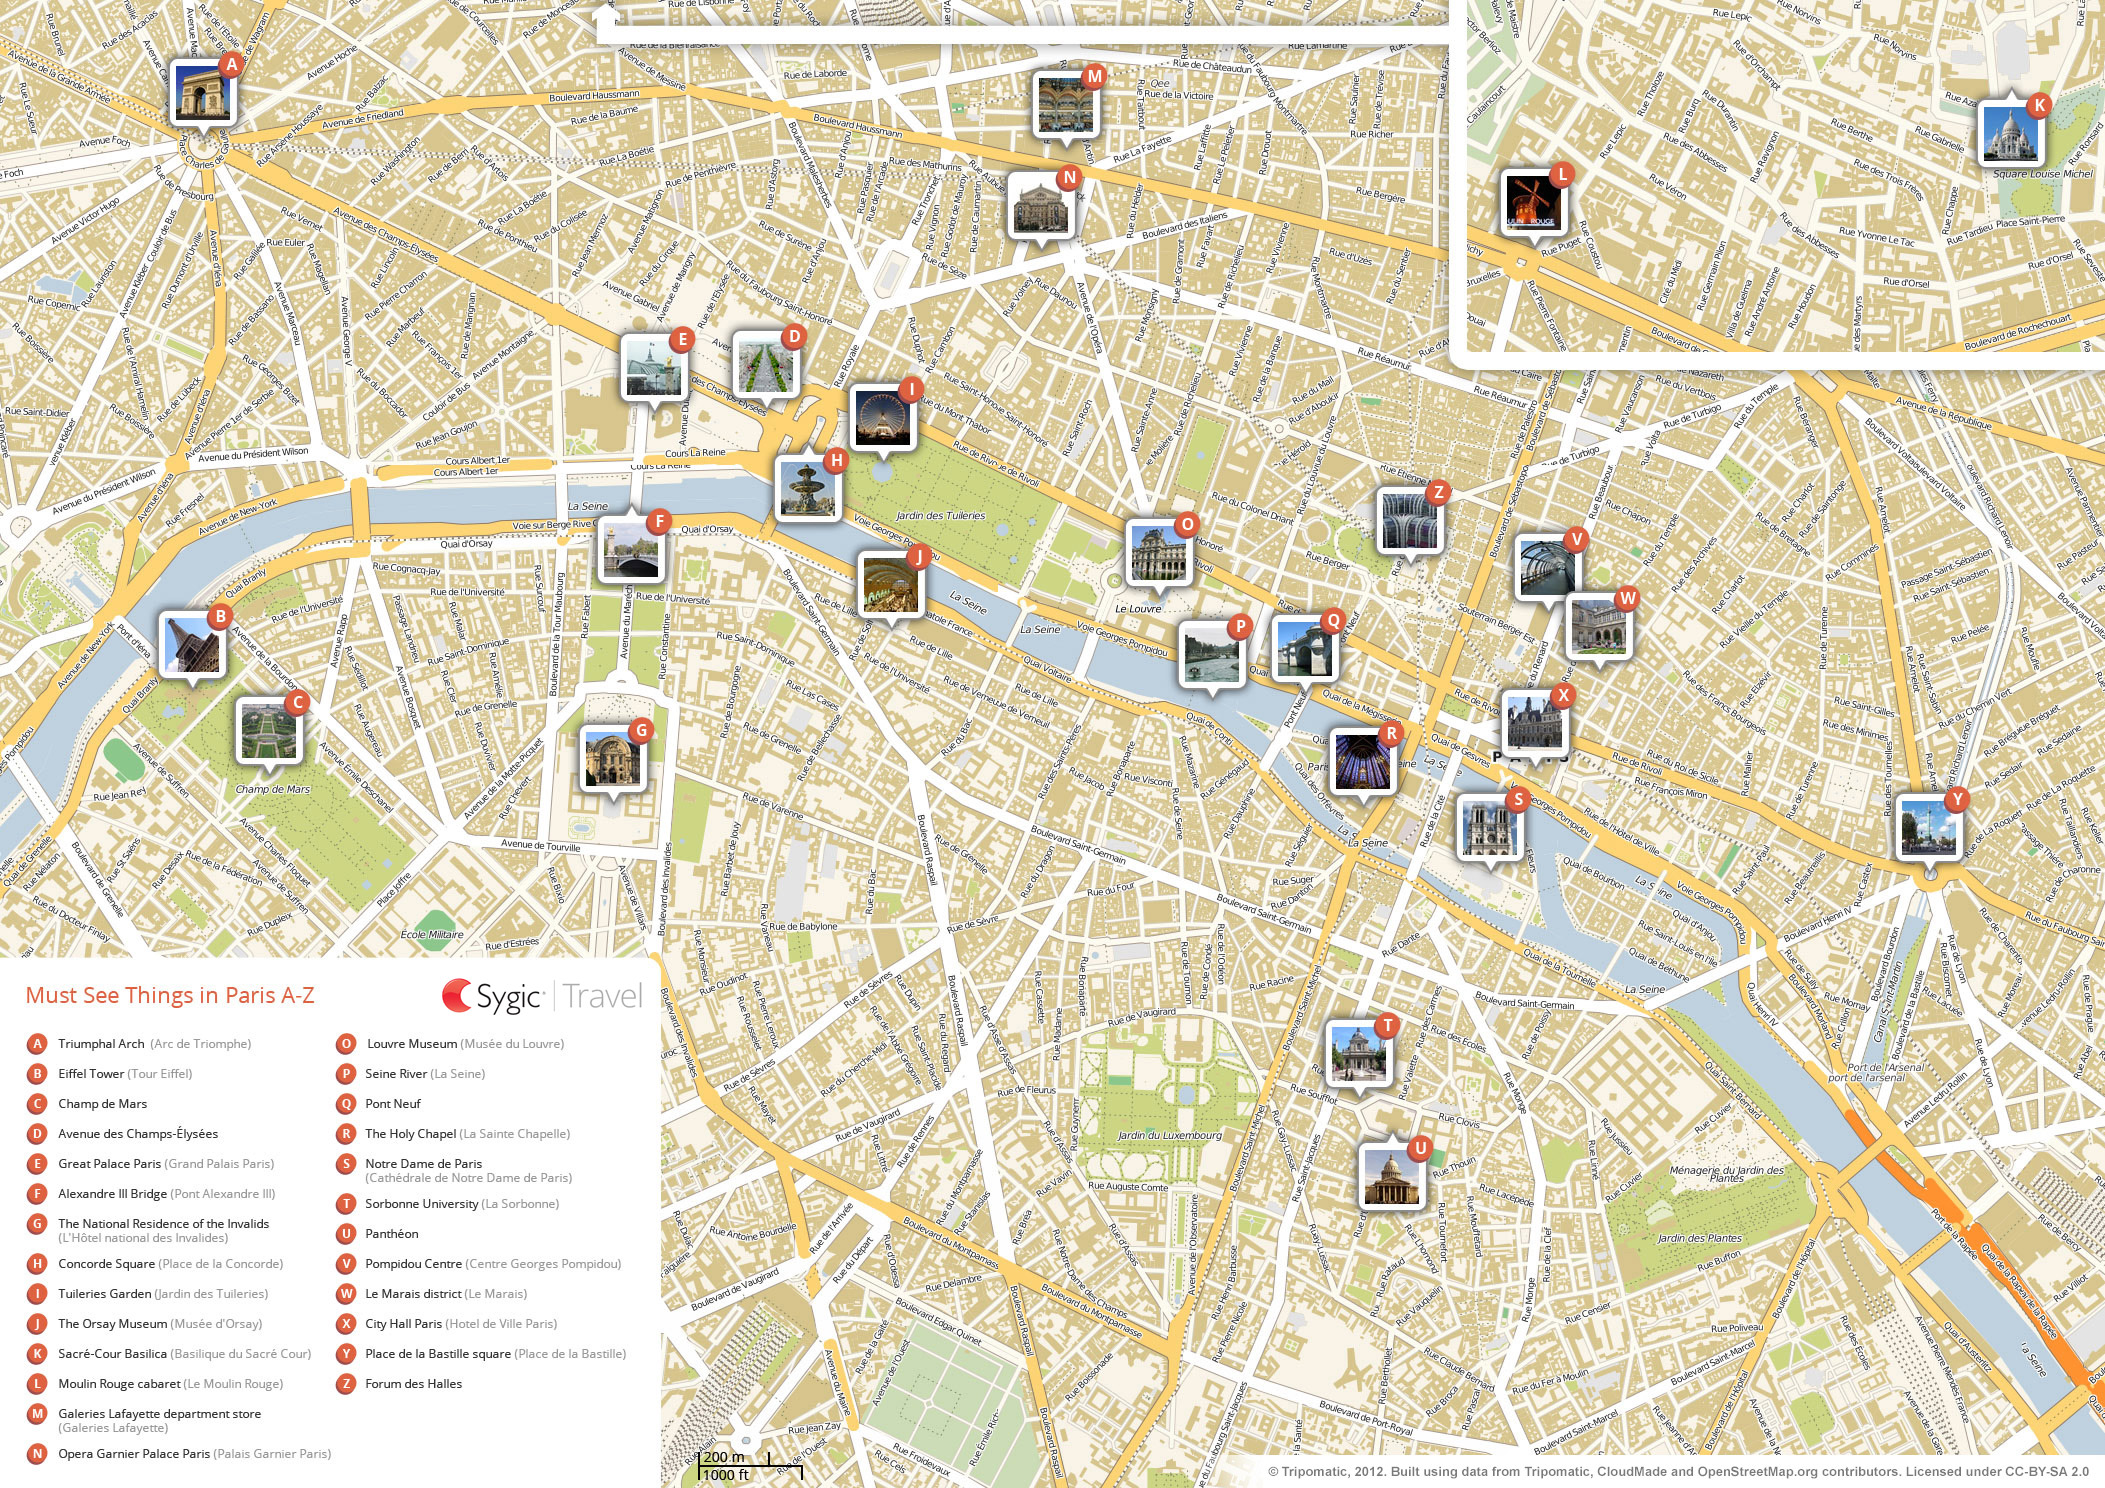 Paris Printable Tourist Map – Amsterdam City Centre Map Tourist